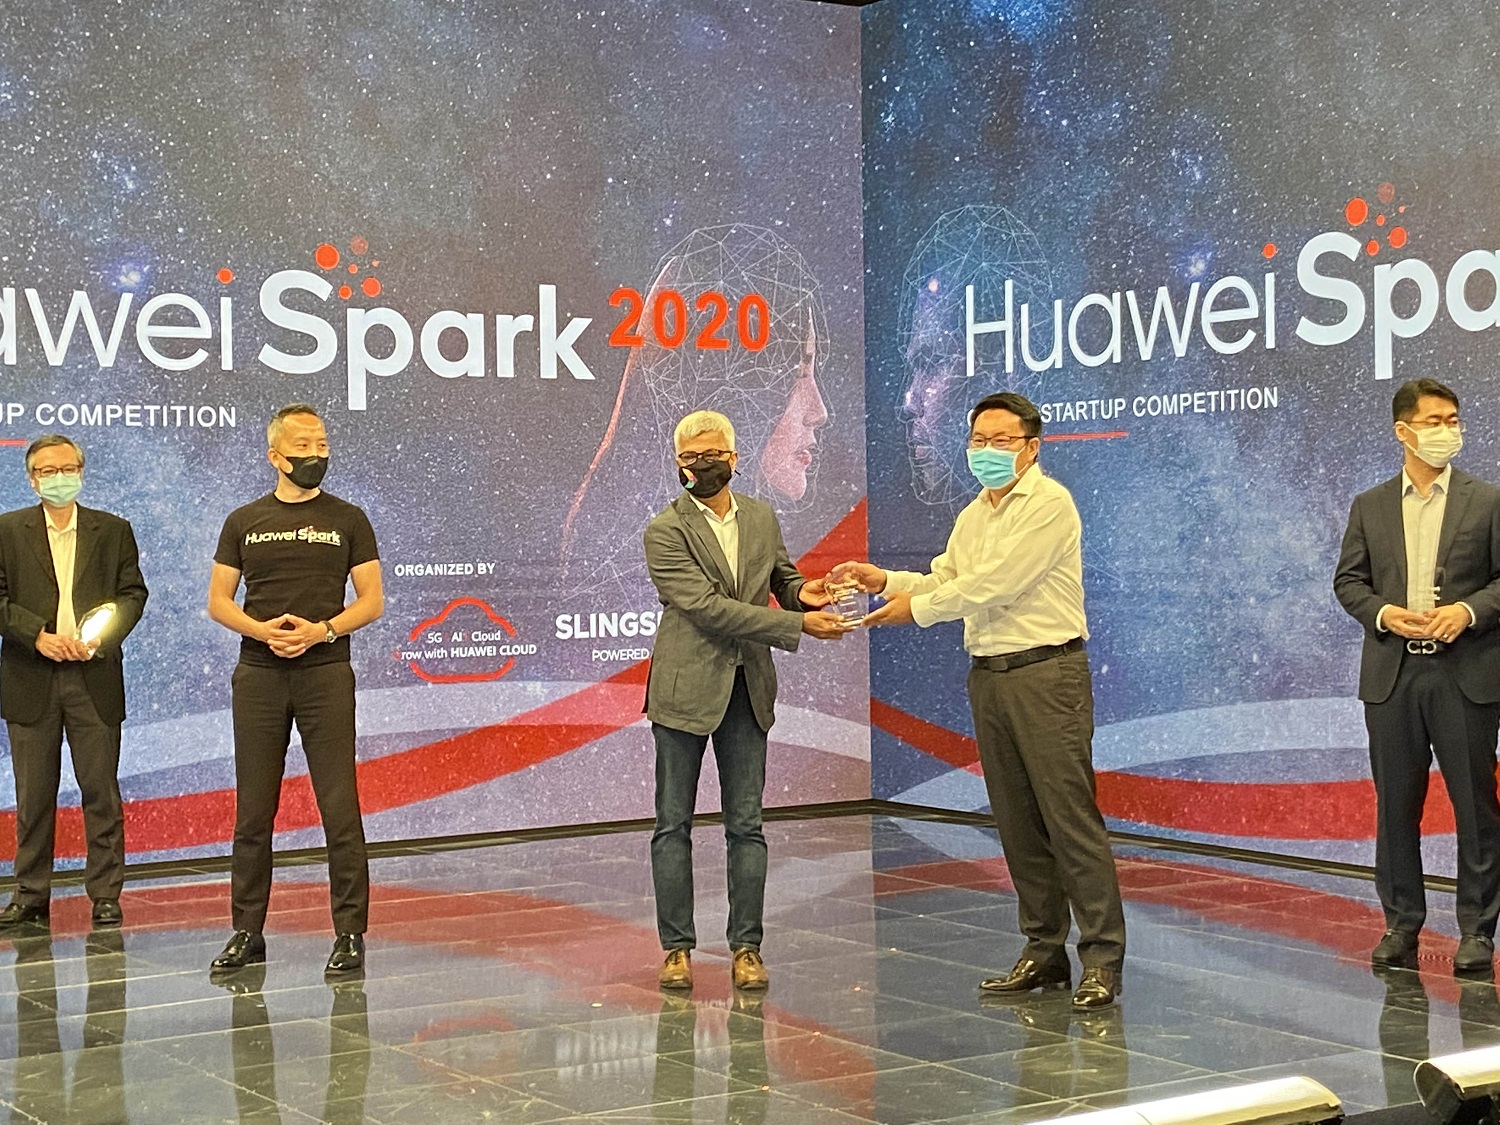 maya.ai declared first champion of Huawei Spark 2020 - Global Startup Competition